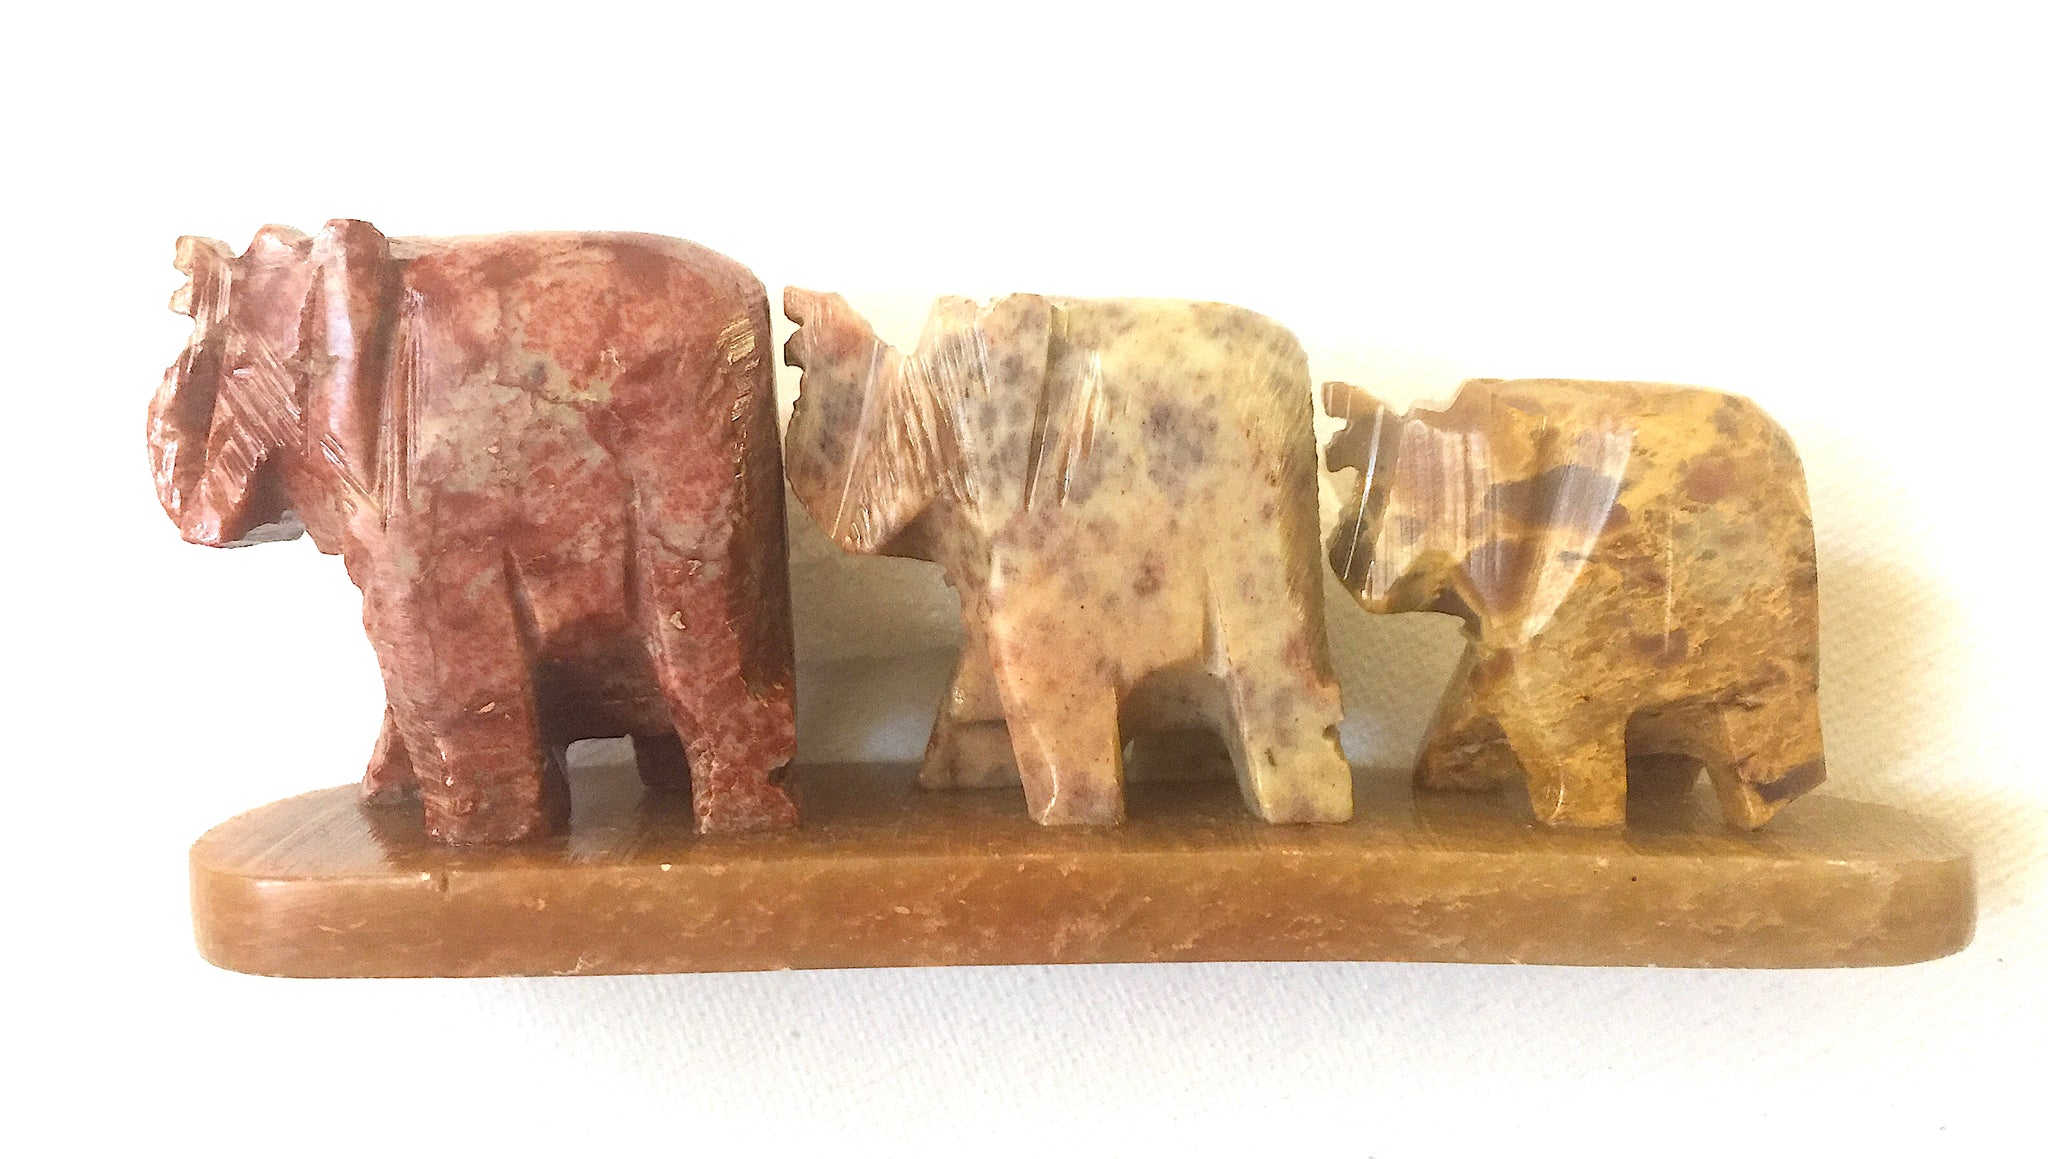 Three elephants incense holder 4 arirosebodycarestore three elephants incense holder 4 biocorpaavc Image collections